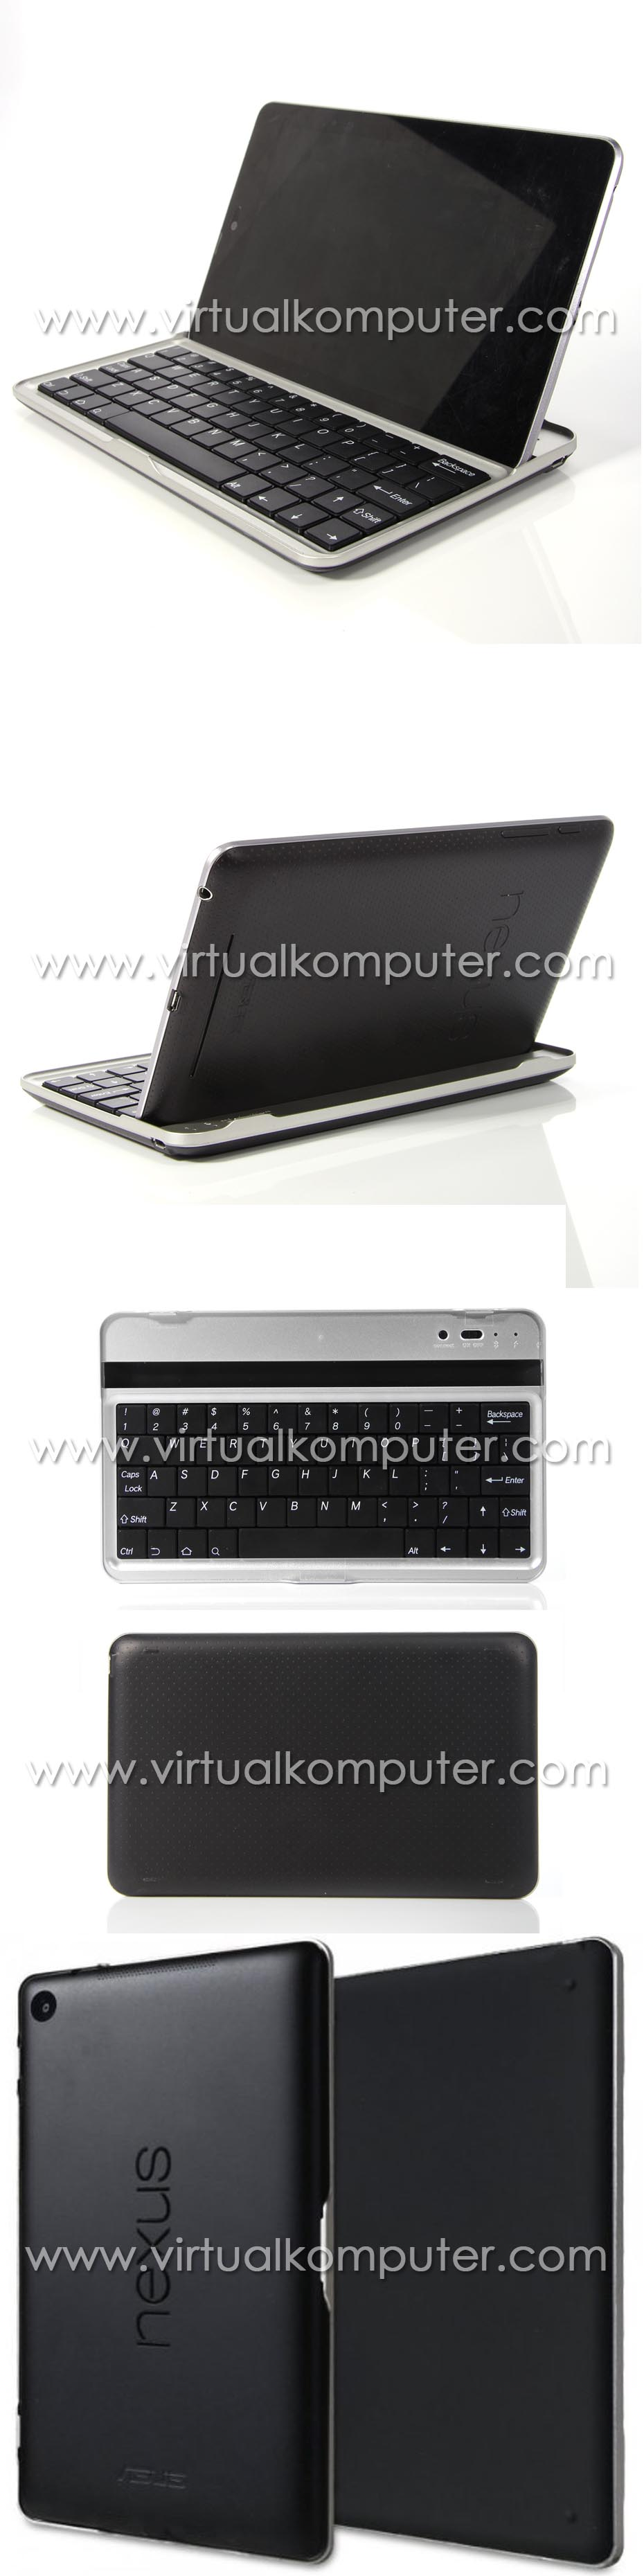 Ultra Slim Keyboard for Google Nexus 7 2013 Overview